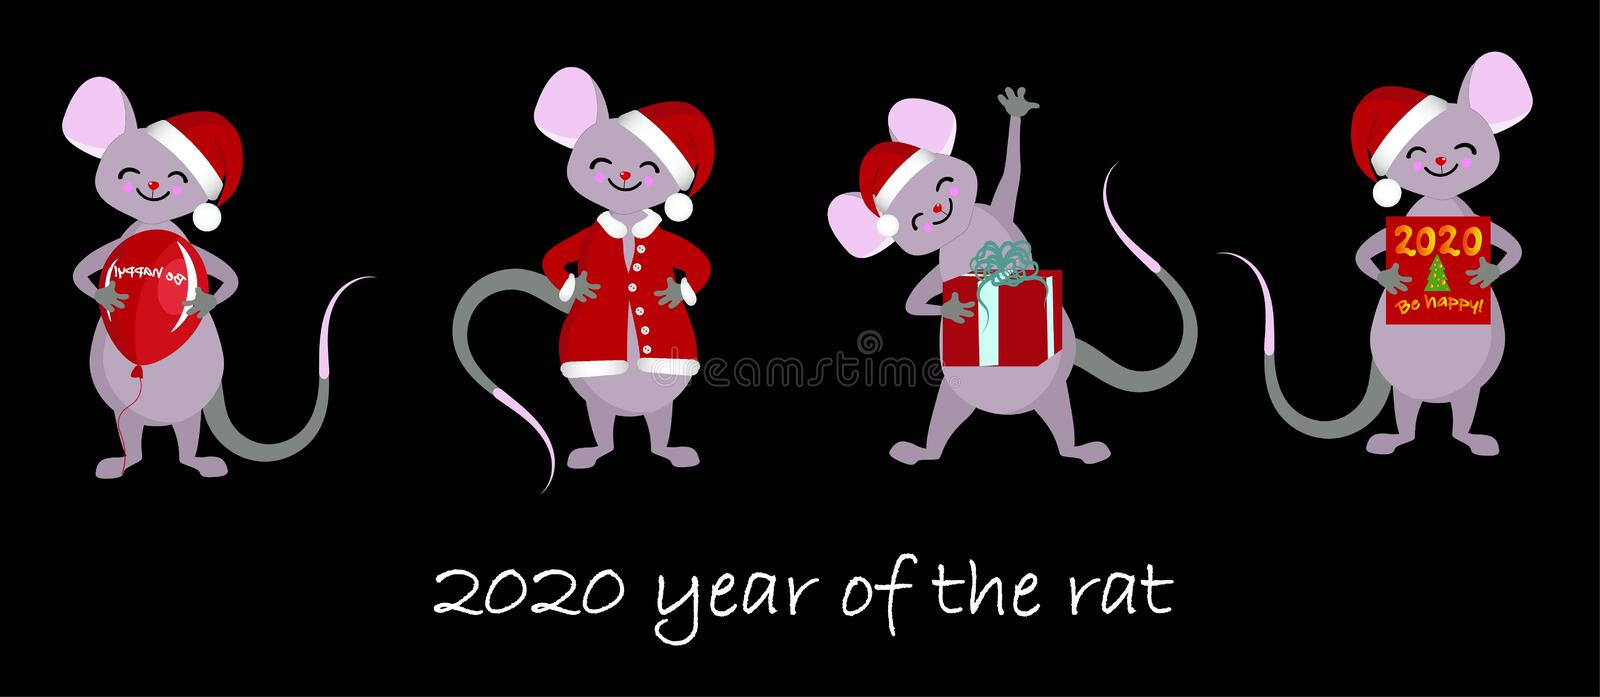 Chinese zodiac sign Year of the Rat, Stickers for children Happy Chinese New Year 2020 rat stock illustration